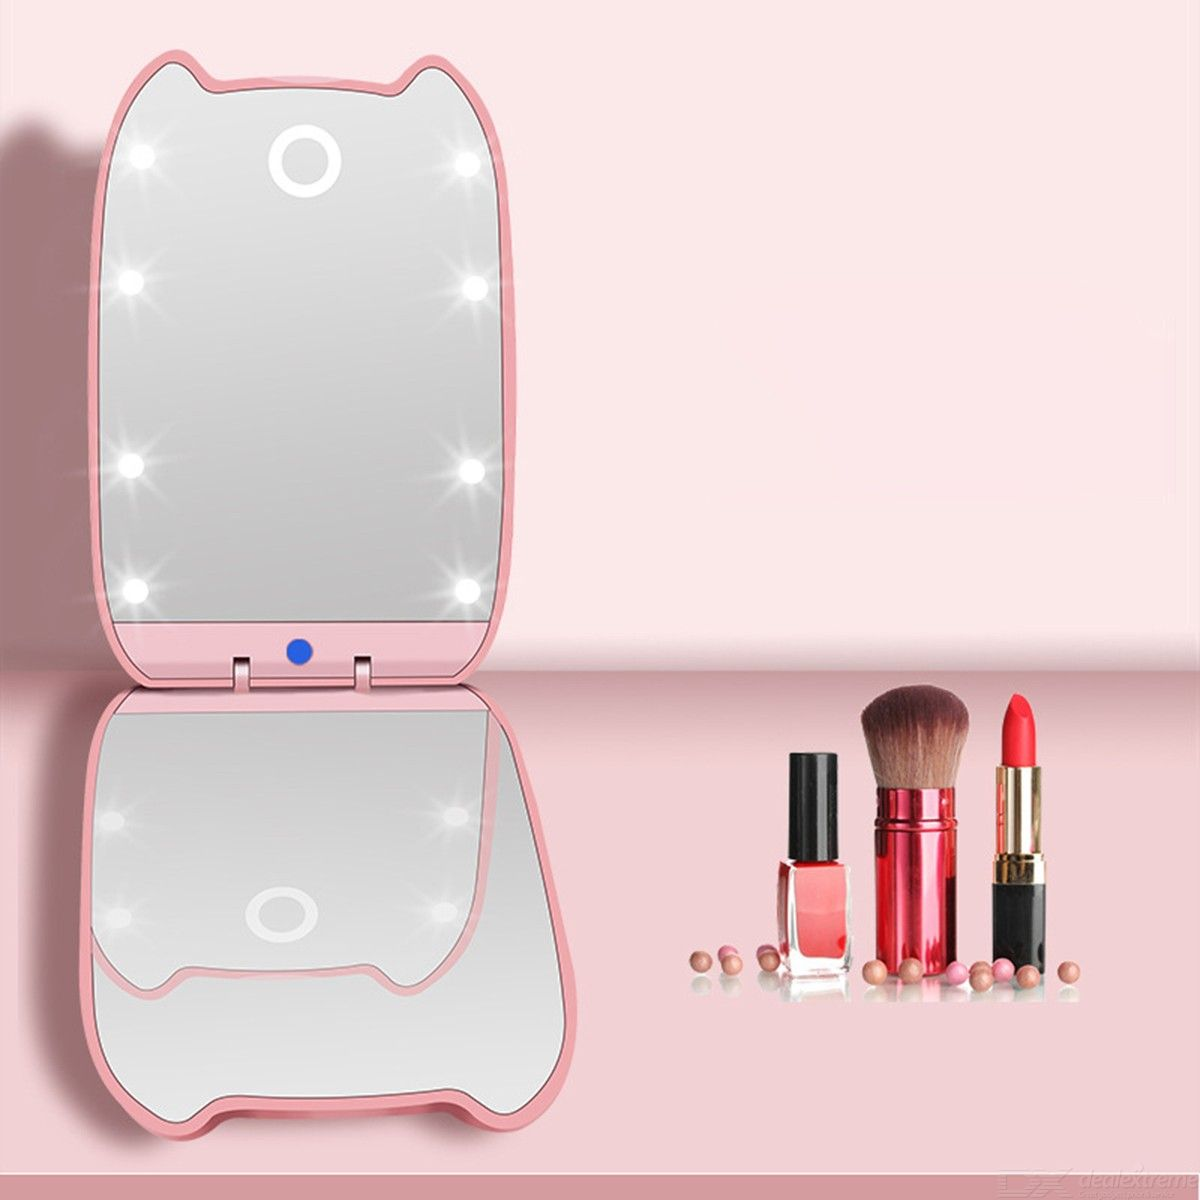 Lighted Travel Makeup Mirror Daylight LED 1 X /2X Magnification